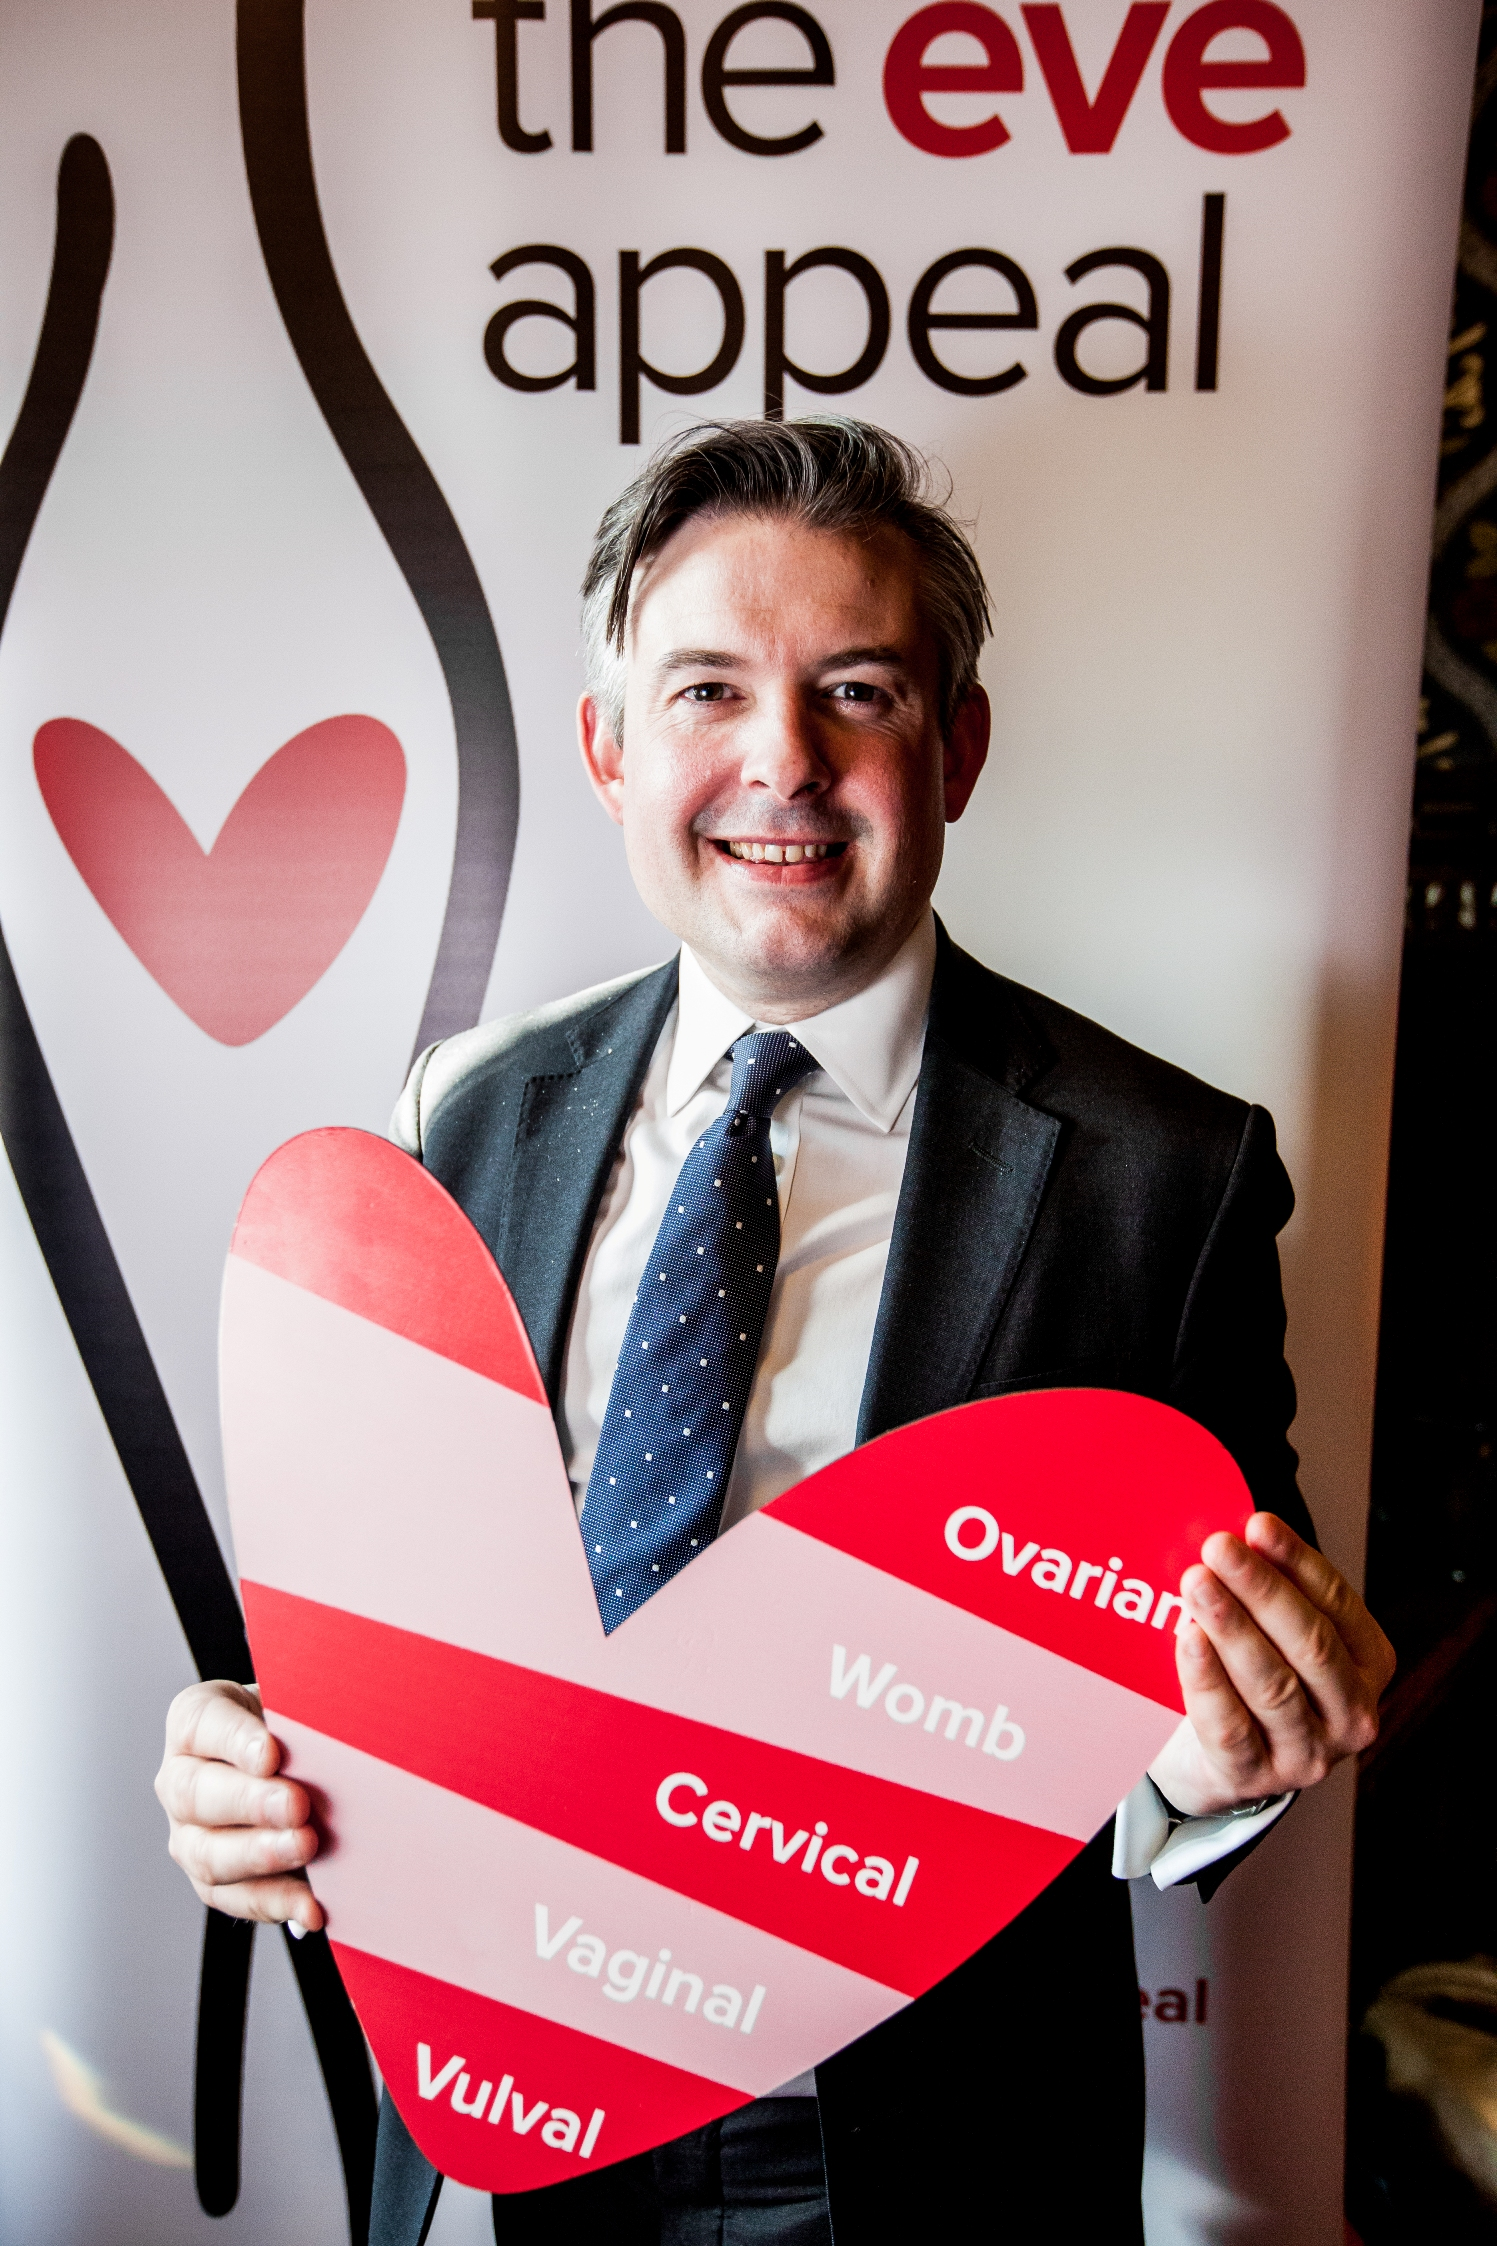 Jon at The Eve Appeal's launch of Ovarian Cancer Awareness Month which runs throughout March - Wednesday February 27 2019